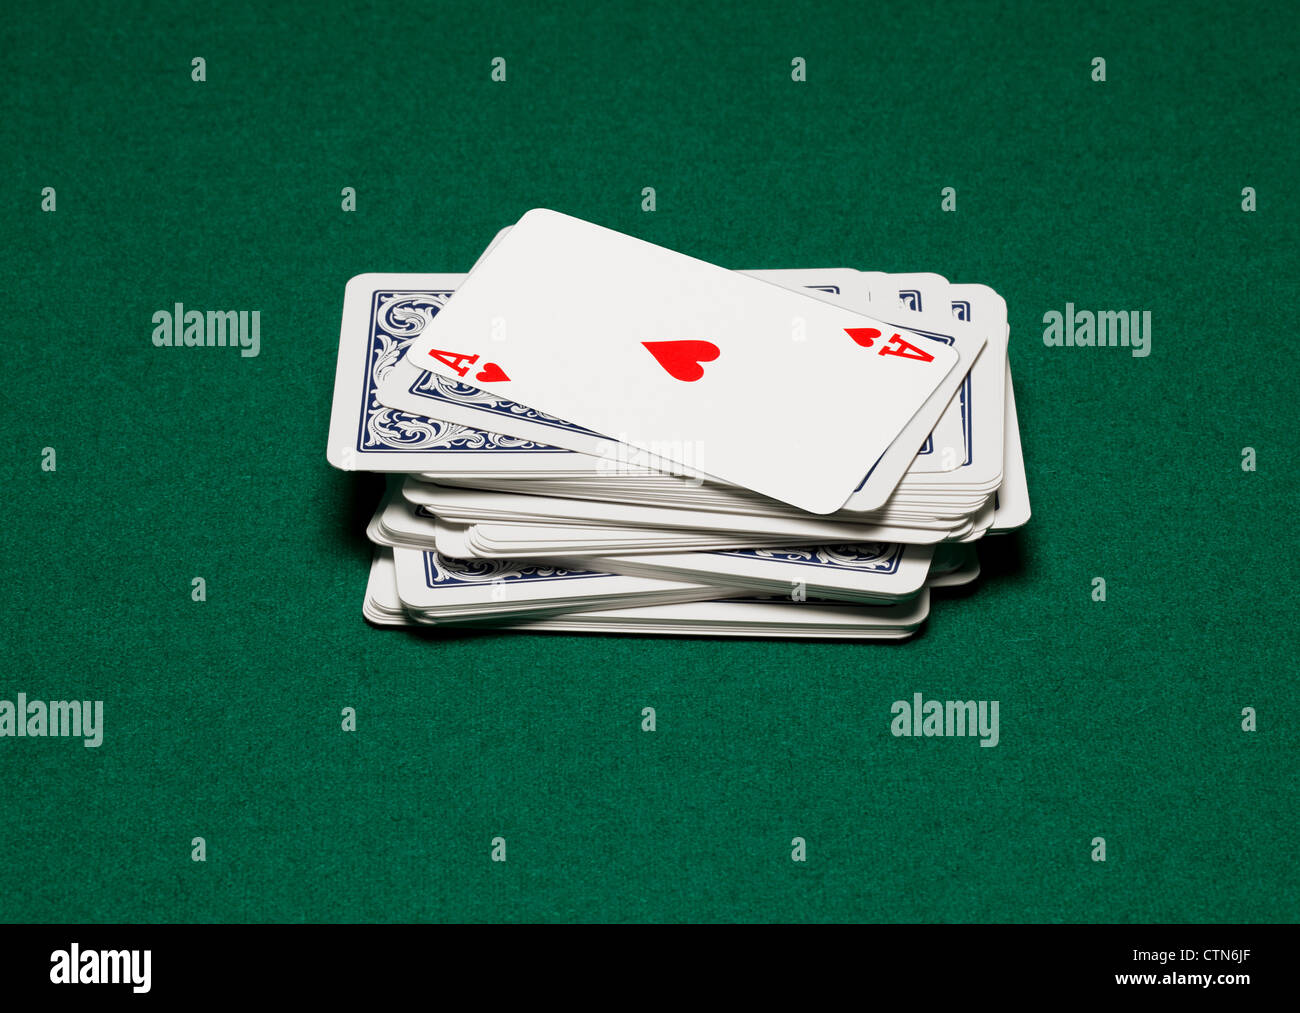 A stack of playing cards on a green table. Ace of hearts shown - Stock Image